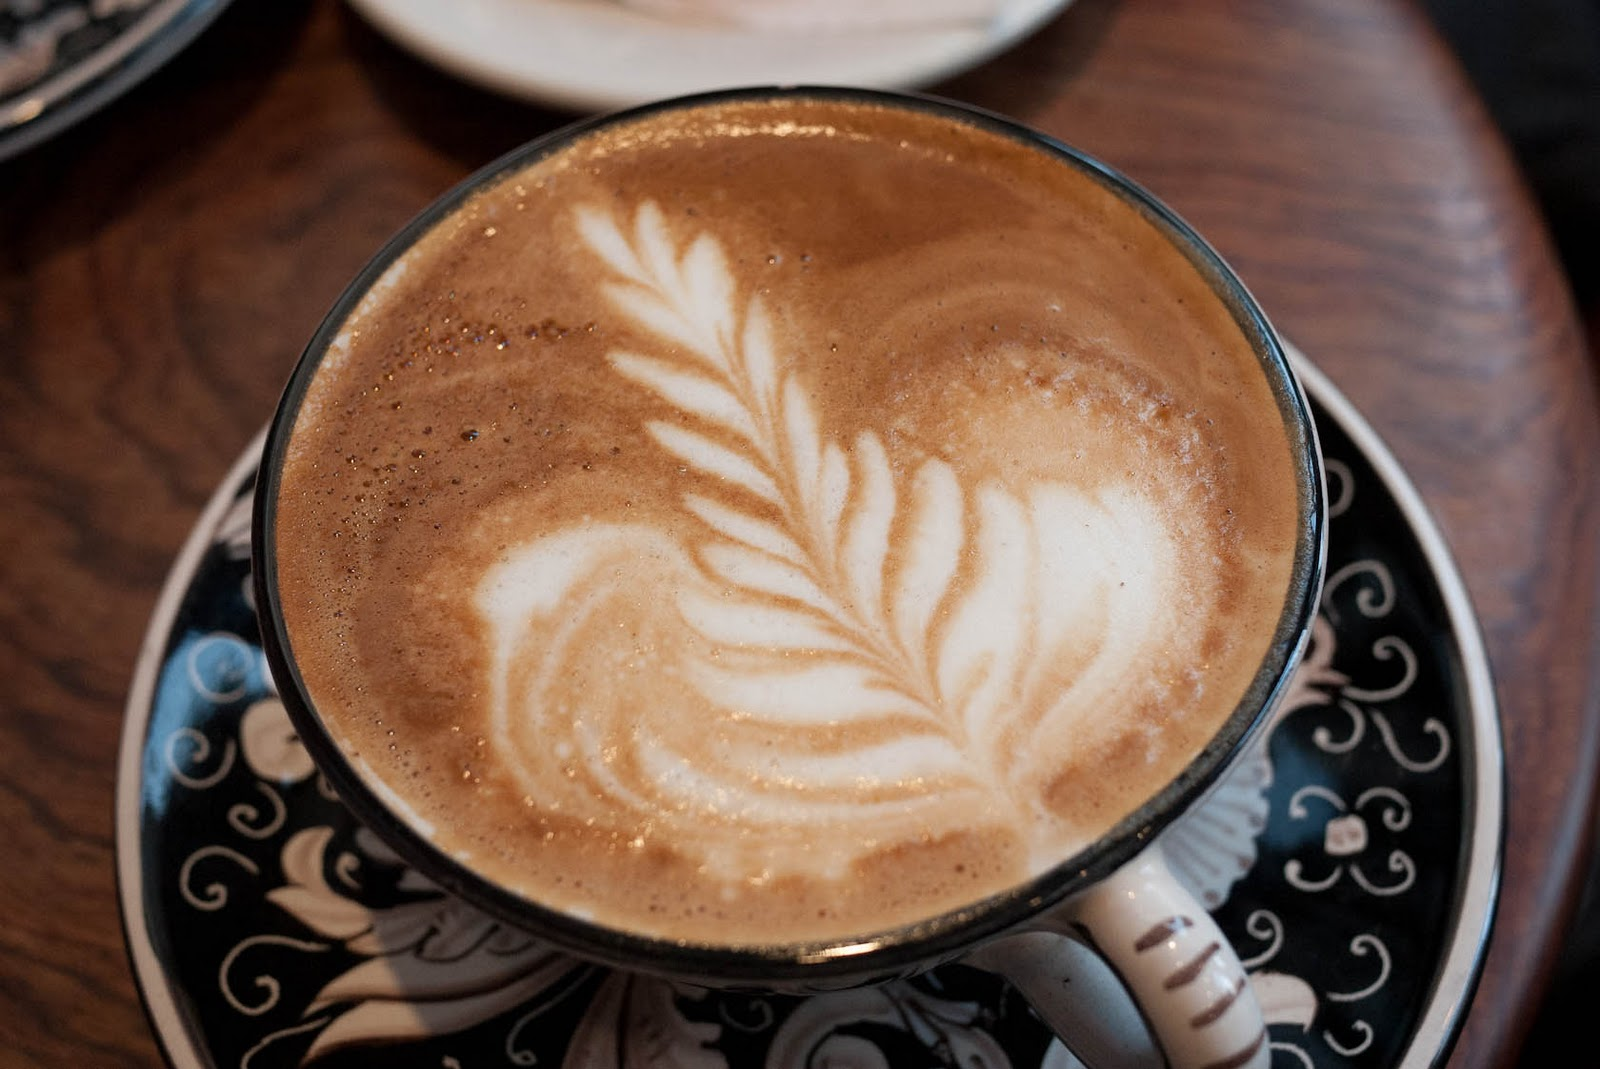 La Colombe coming to Brooklyn